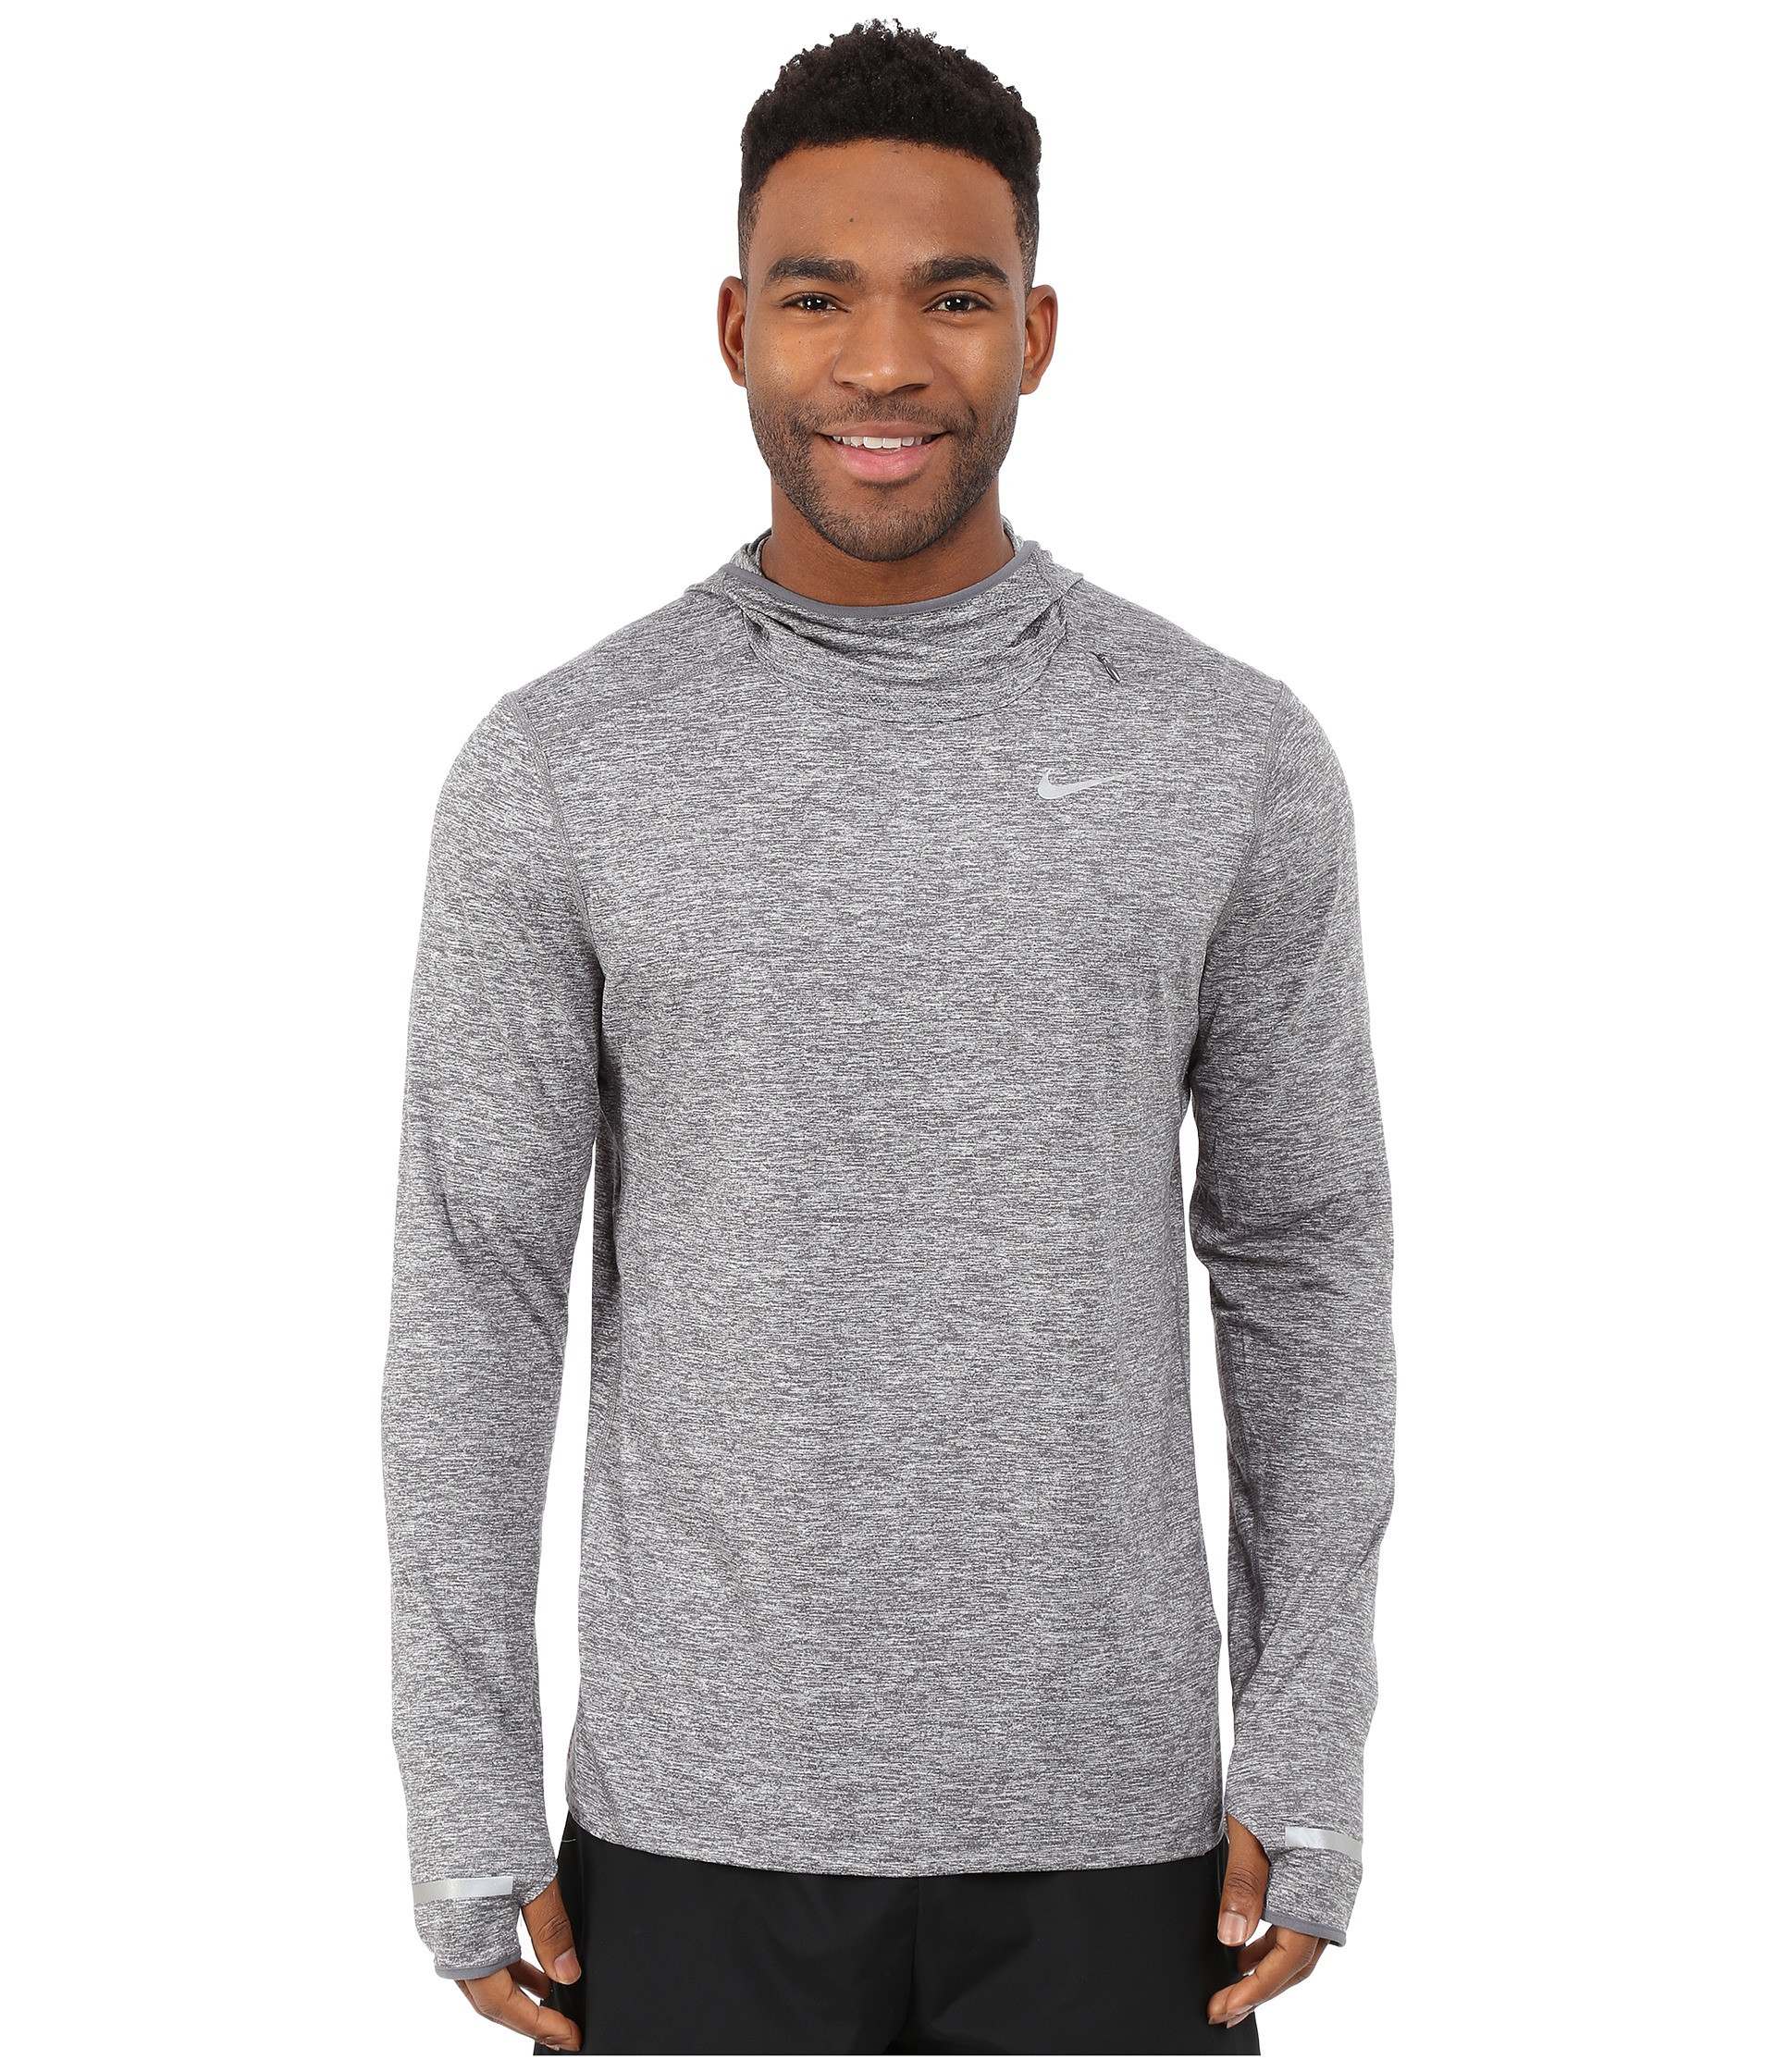 94c8181a9546 Lyst - Nike Dri-fit™ Element Hoodie in Gray for Men